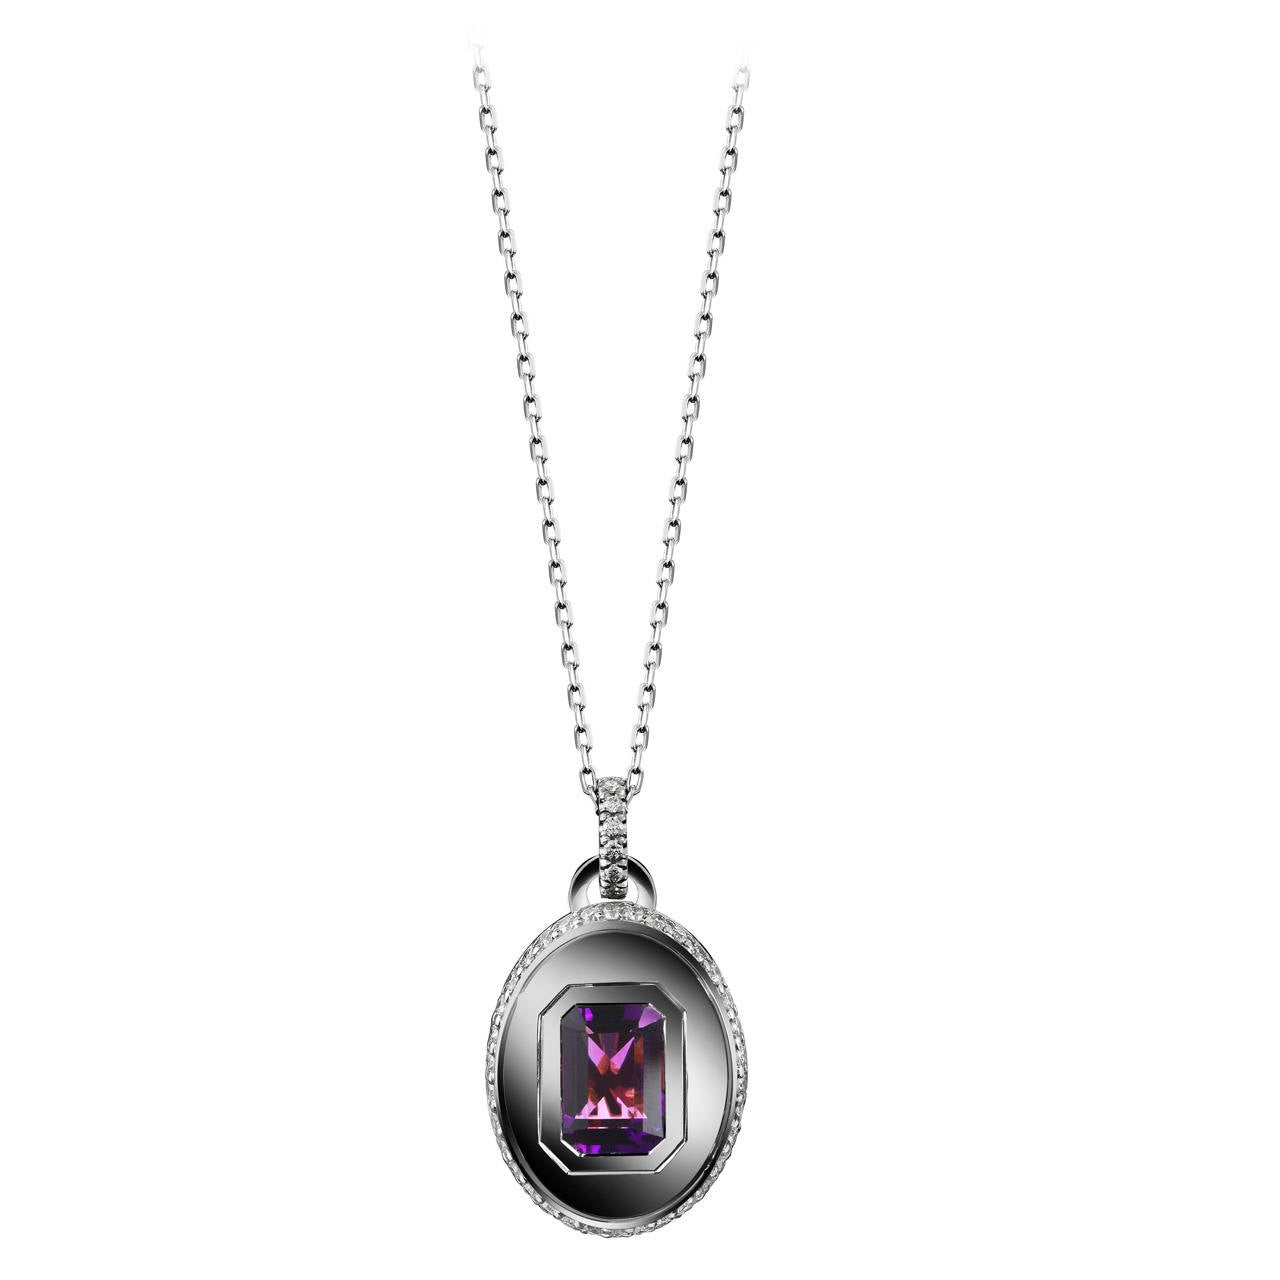 Alexandra Mor Emerald-Cut Amethyst and Diamond February Birthstone Pendant